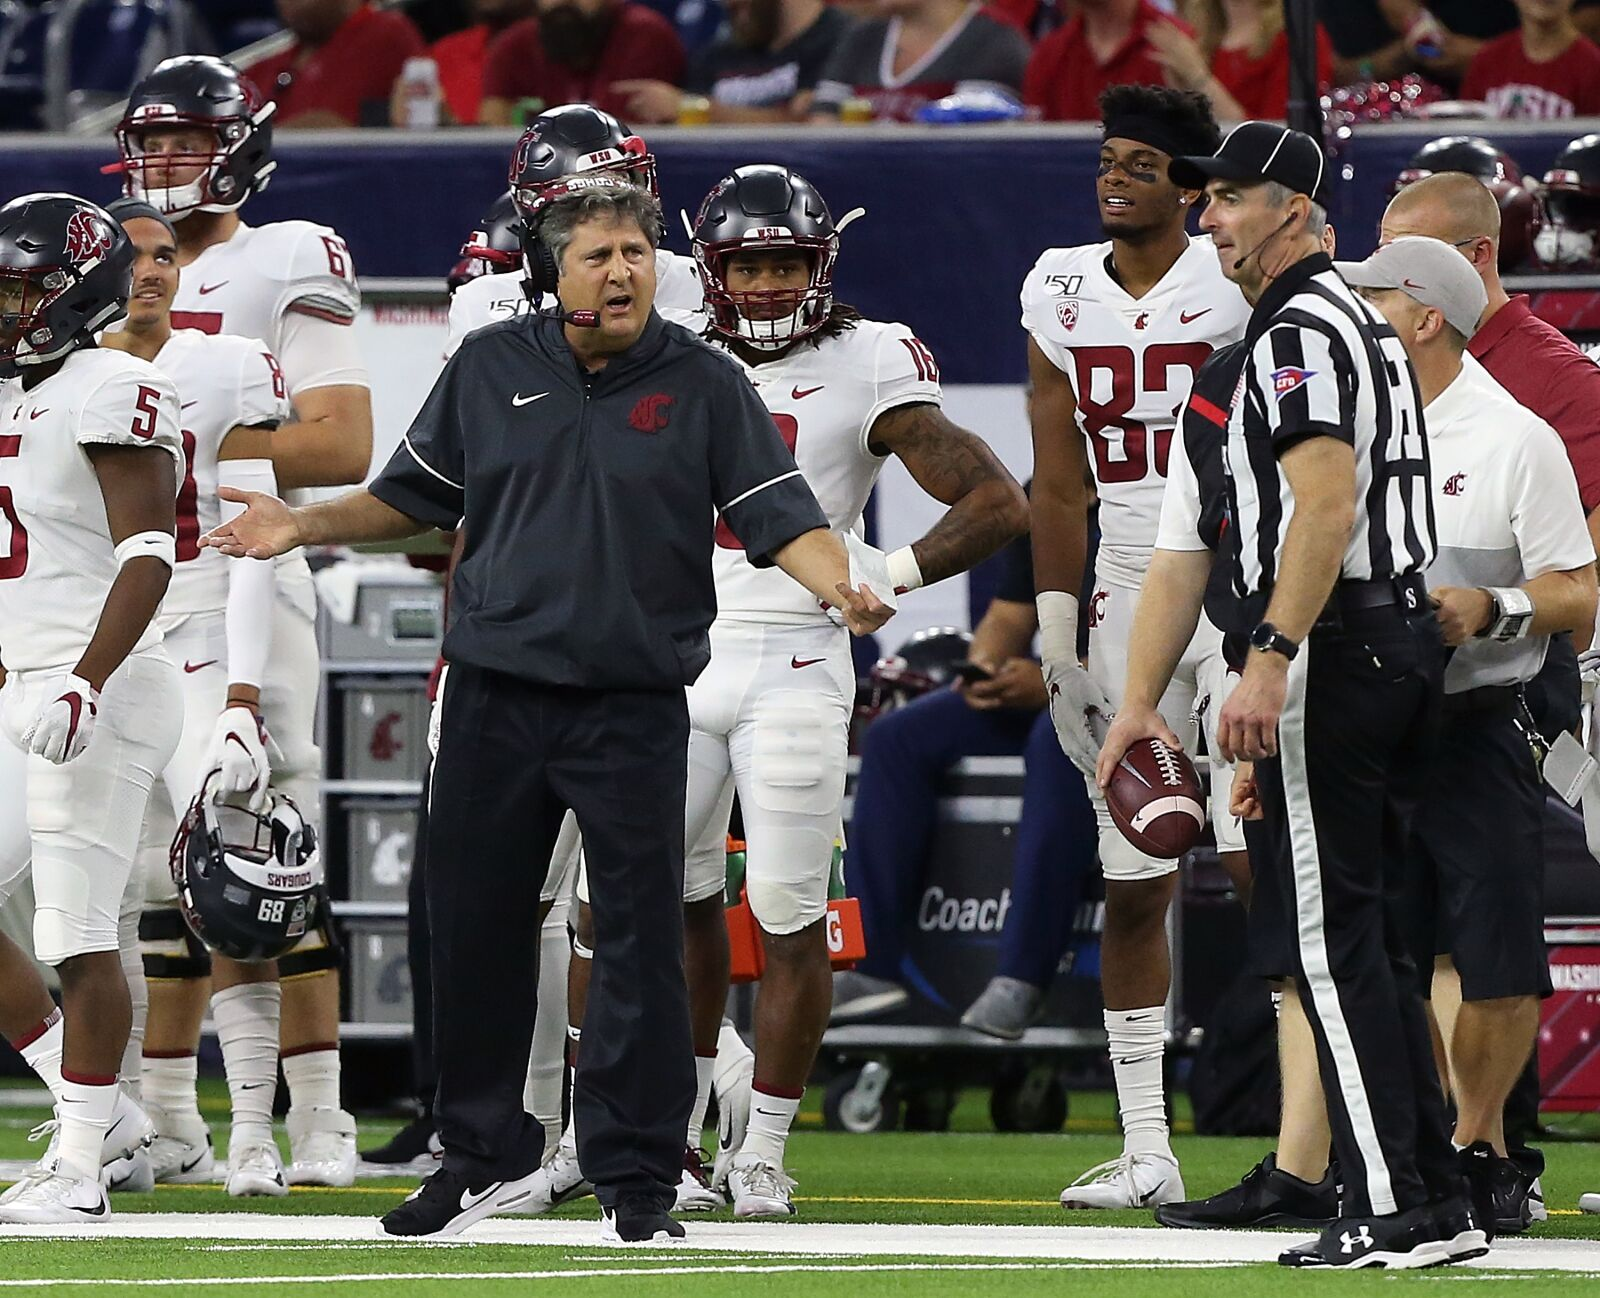 Pac-12 playoff hopes rest with Mike Leach and Washington State